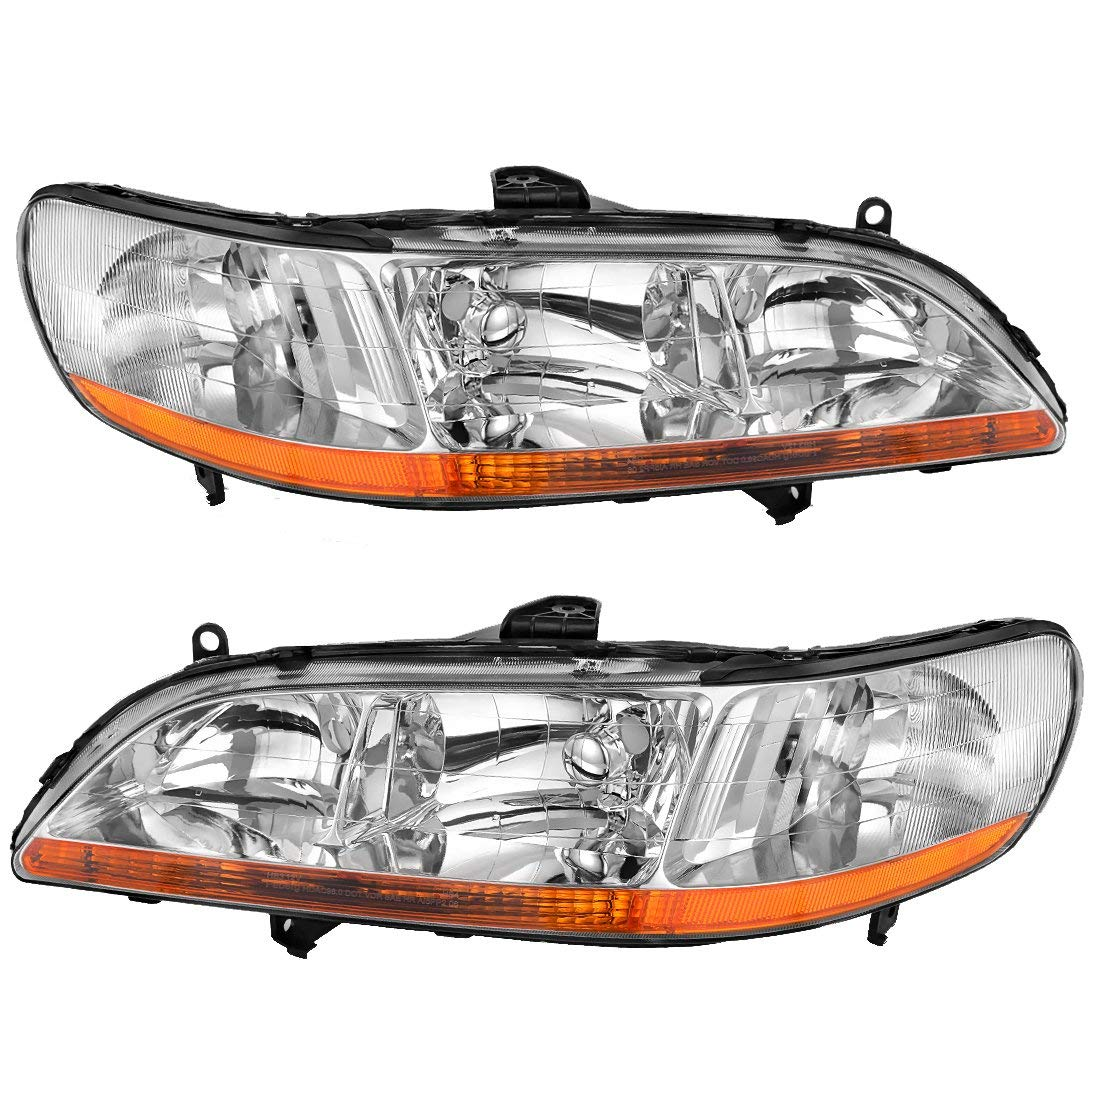 hight resolution of headlight assembly for 1998 1999 2000 2001 2002 honda accord headlamp replacement chrome housing amber reflector one year warranty passenger and driver